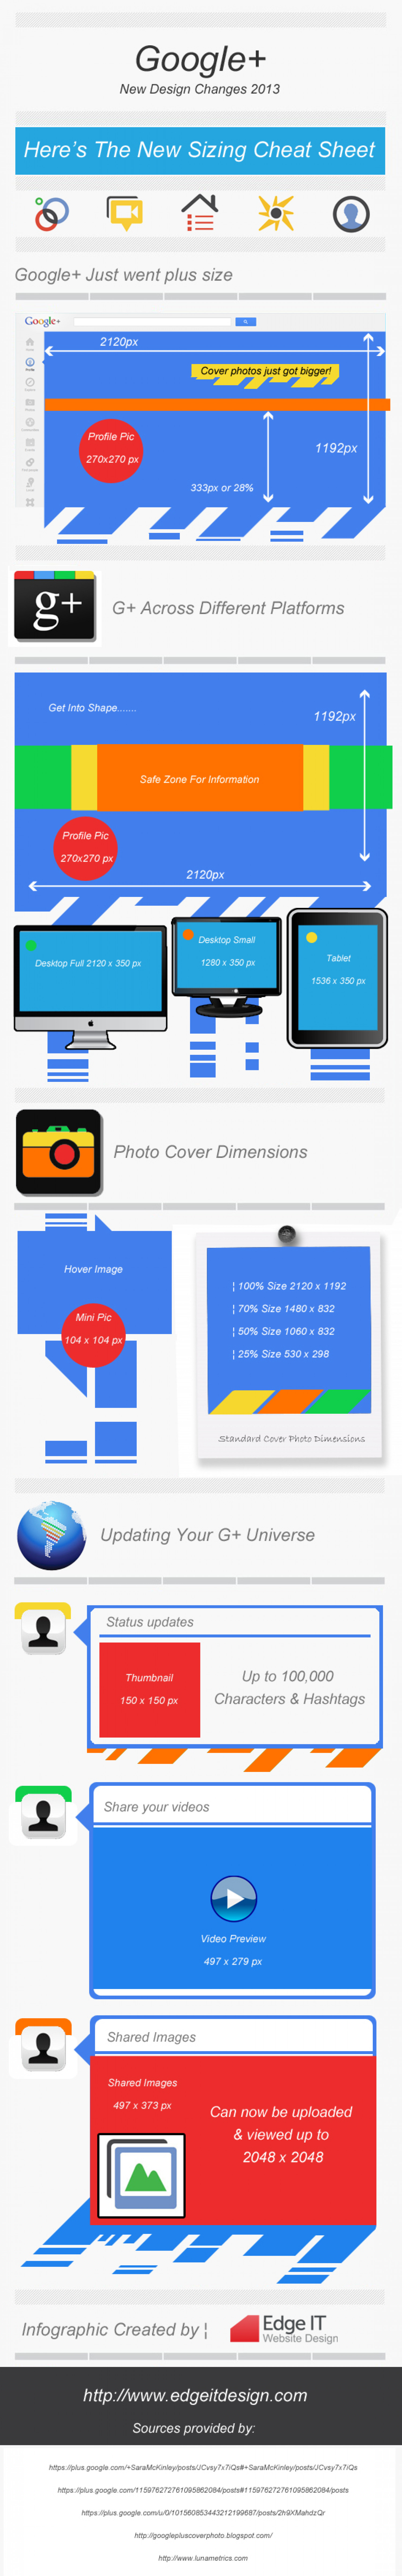 Google Plus Design Cheat Sheet 2013 Infographic